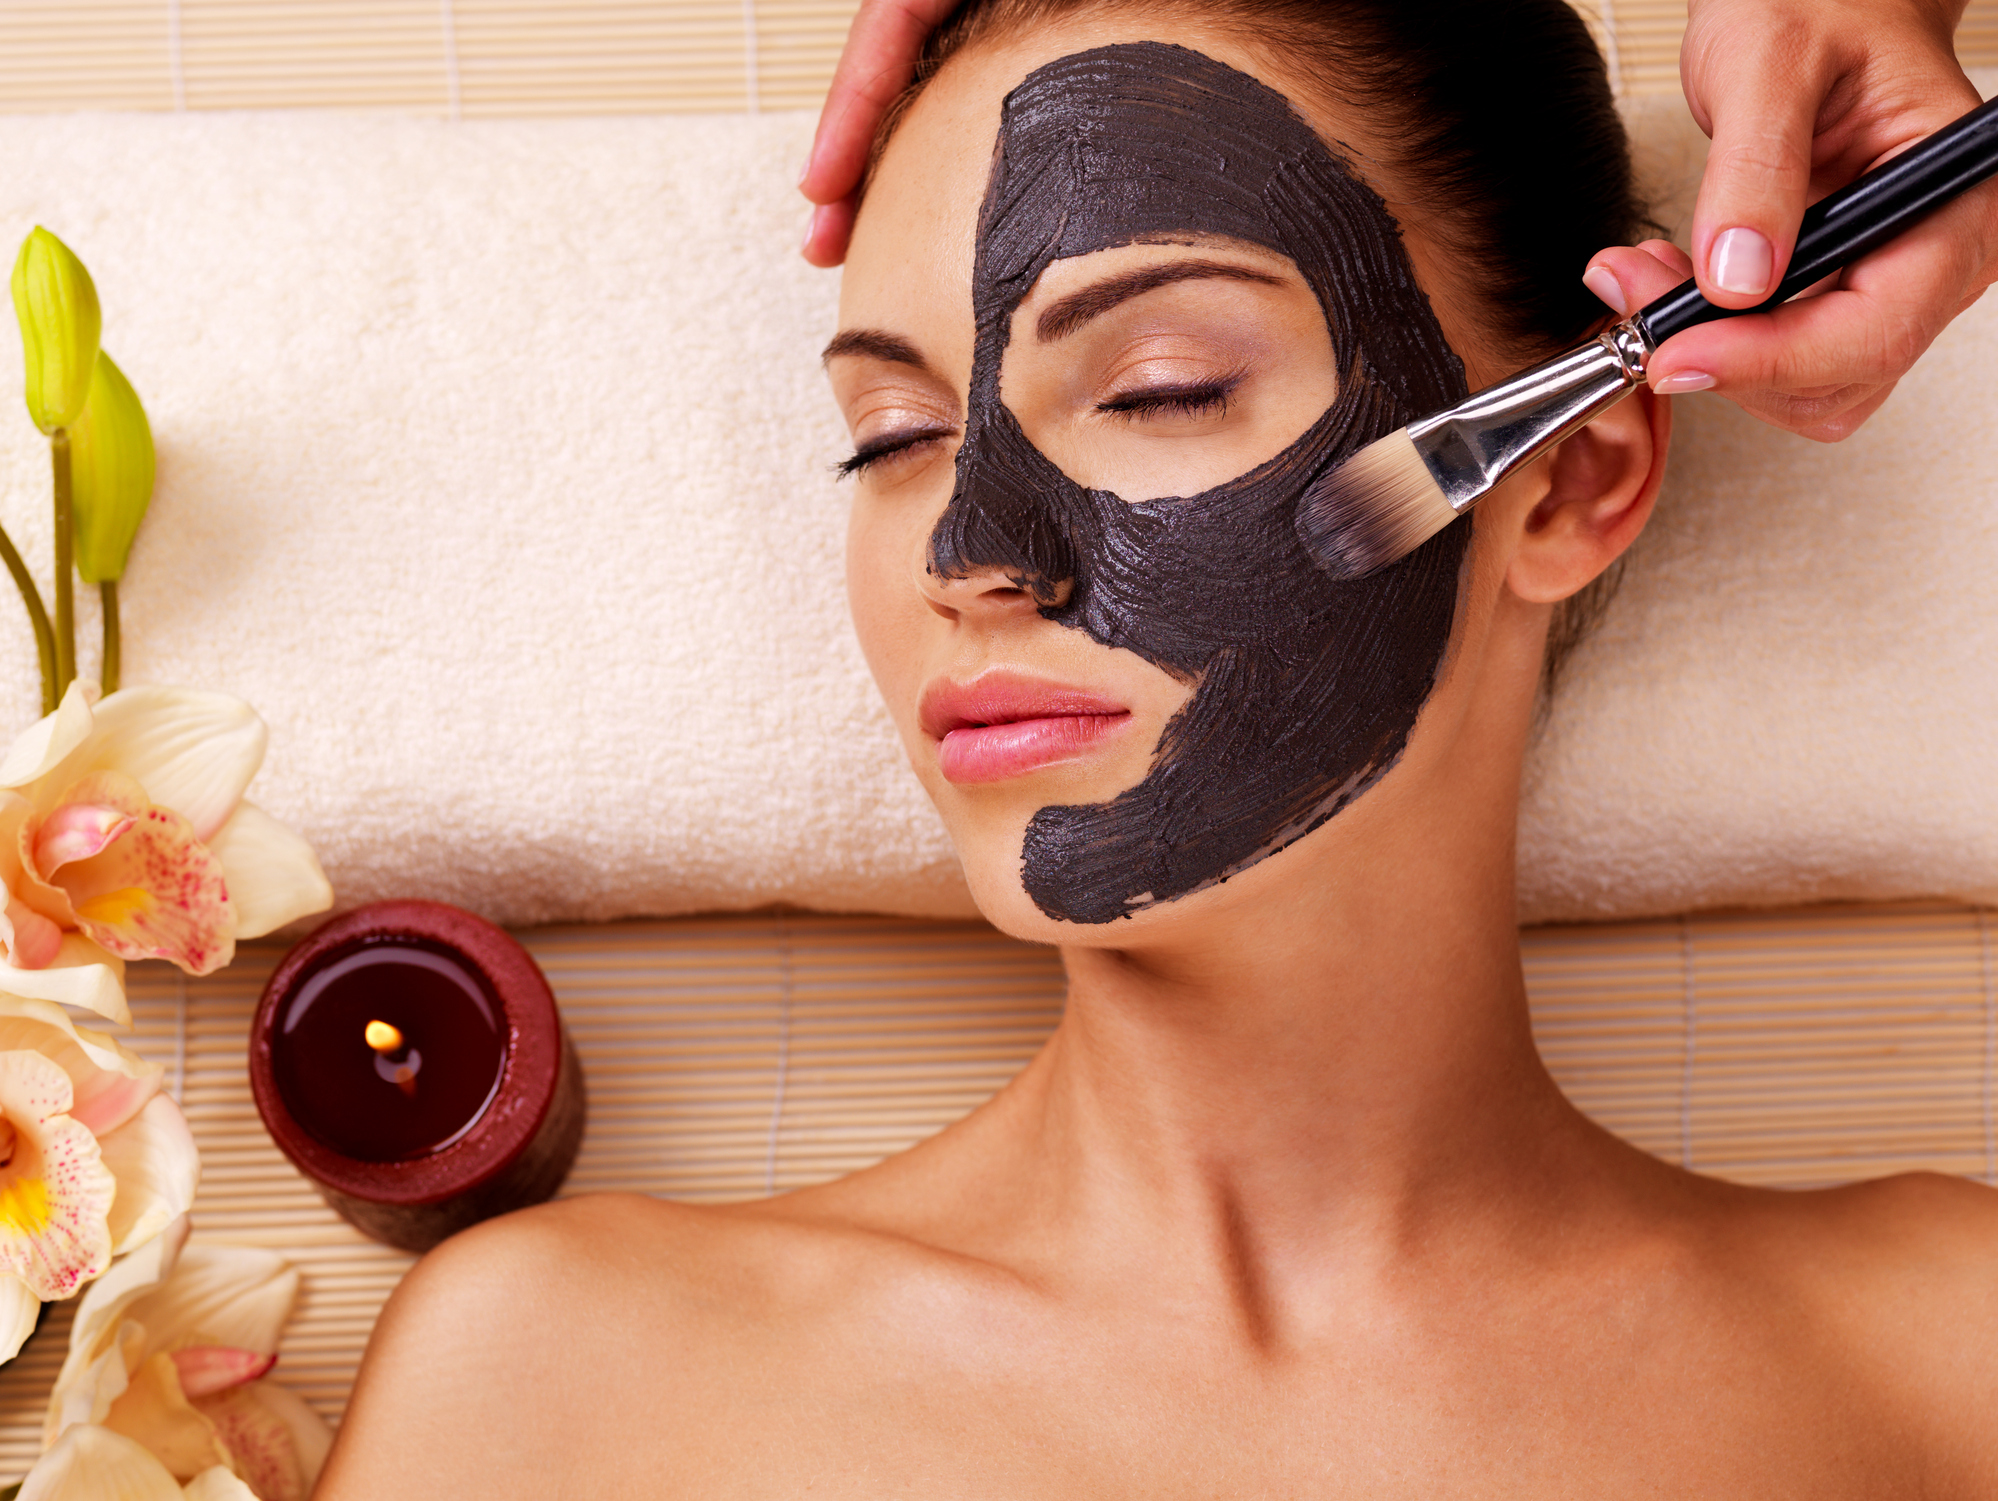 Facials - All of our skincare treatments are chosen based upon your skin type and concern. At our Denver spa, you will find complete relaxation and rejuvenation with each treatment utilizing Image Skincare and Dermaquest products.